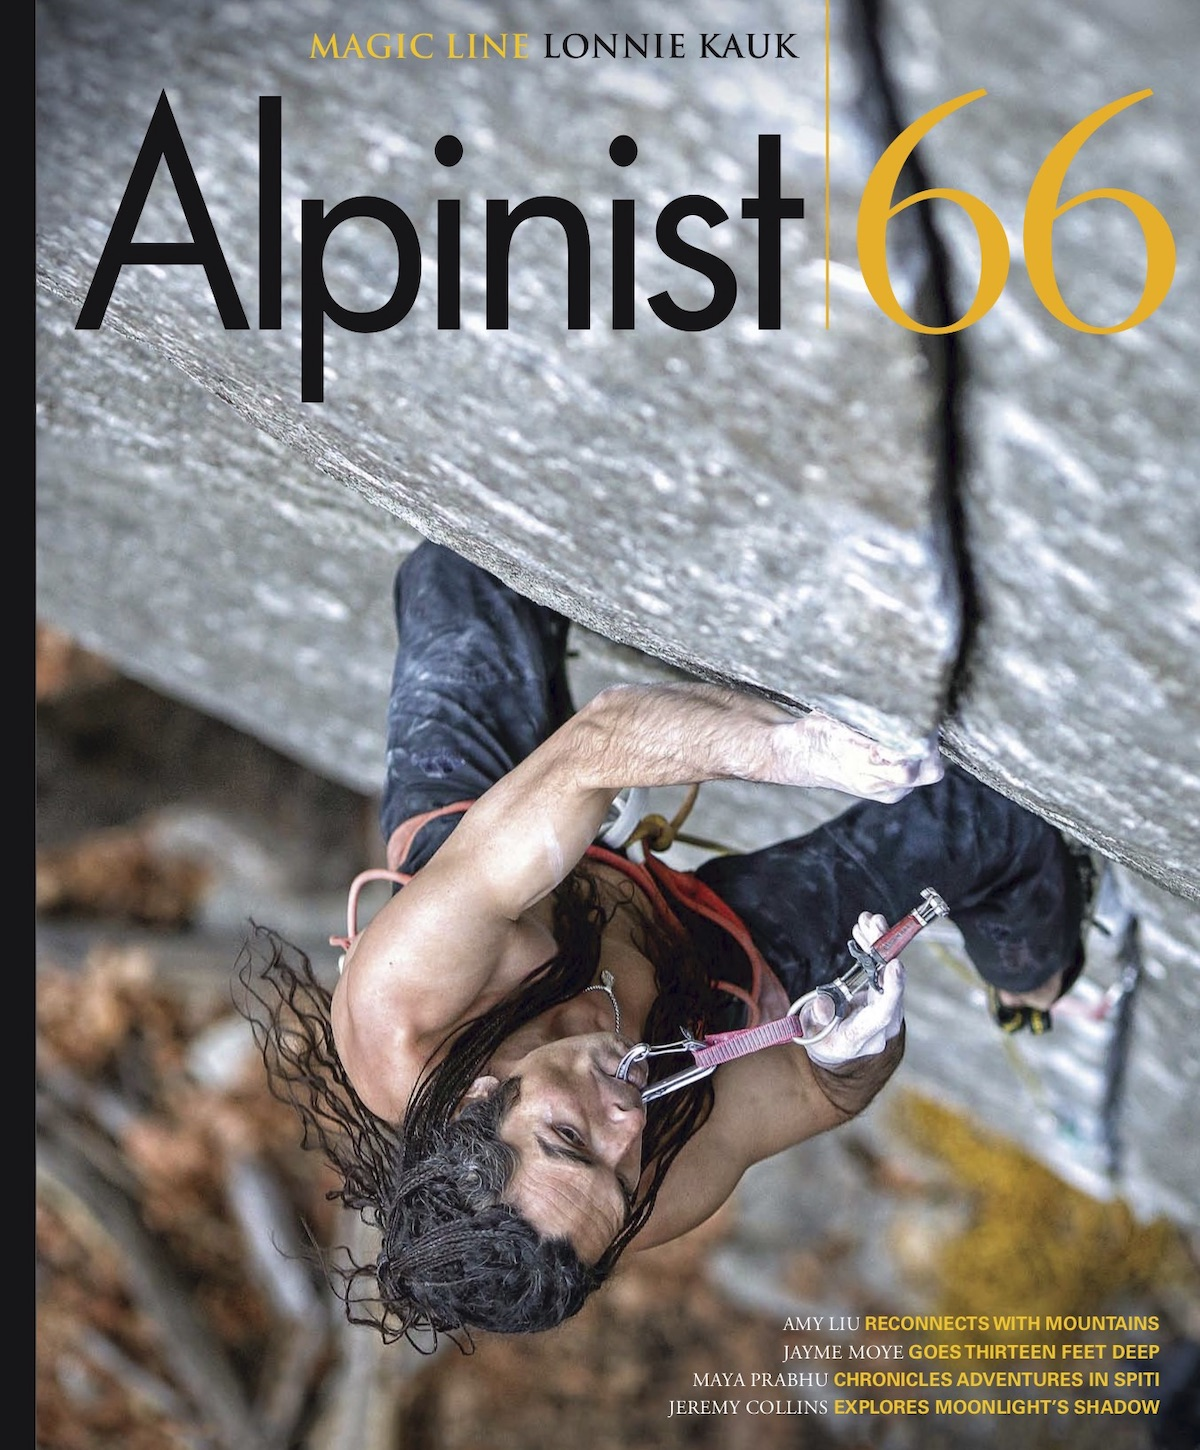 The cover of Alpinist 66 features Lonnie Kauk climbing Magic Line (5.14c) in Yosemite Valley. The story is on the long list for Best Mountaineering Article in the Banff Mountain Book Competition. 13 Feet Under by Jayme Moye is from the same issue and is also on the Banff longlist in the same category. [Photo] Jim Thornburg